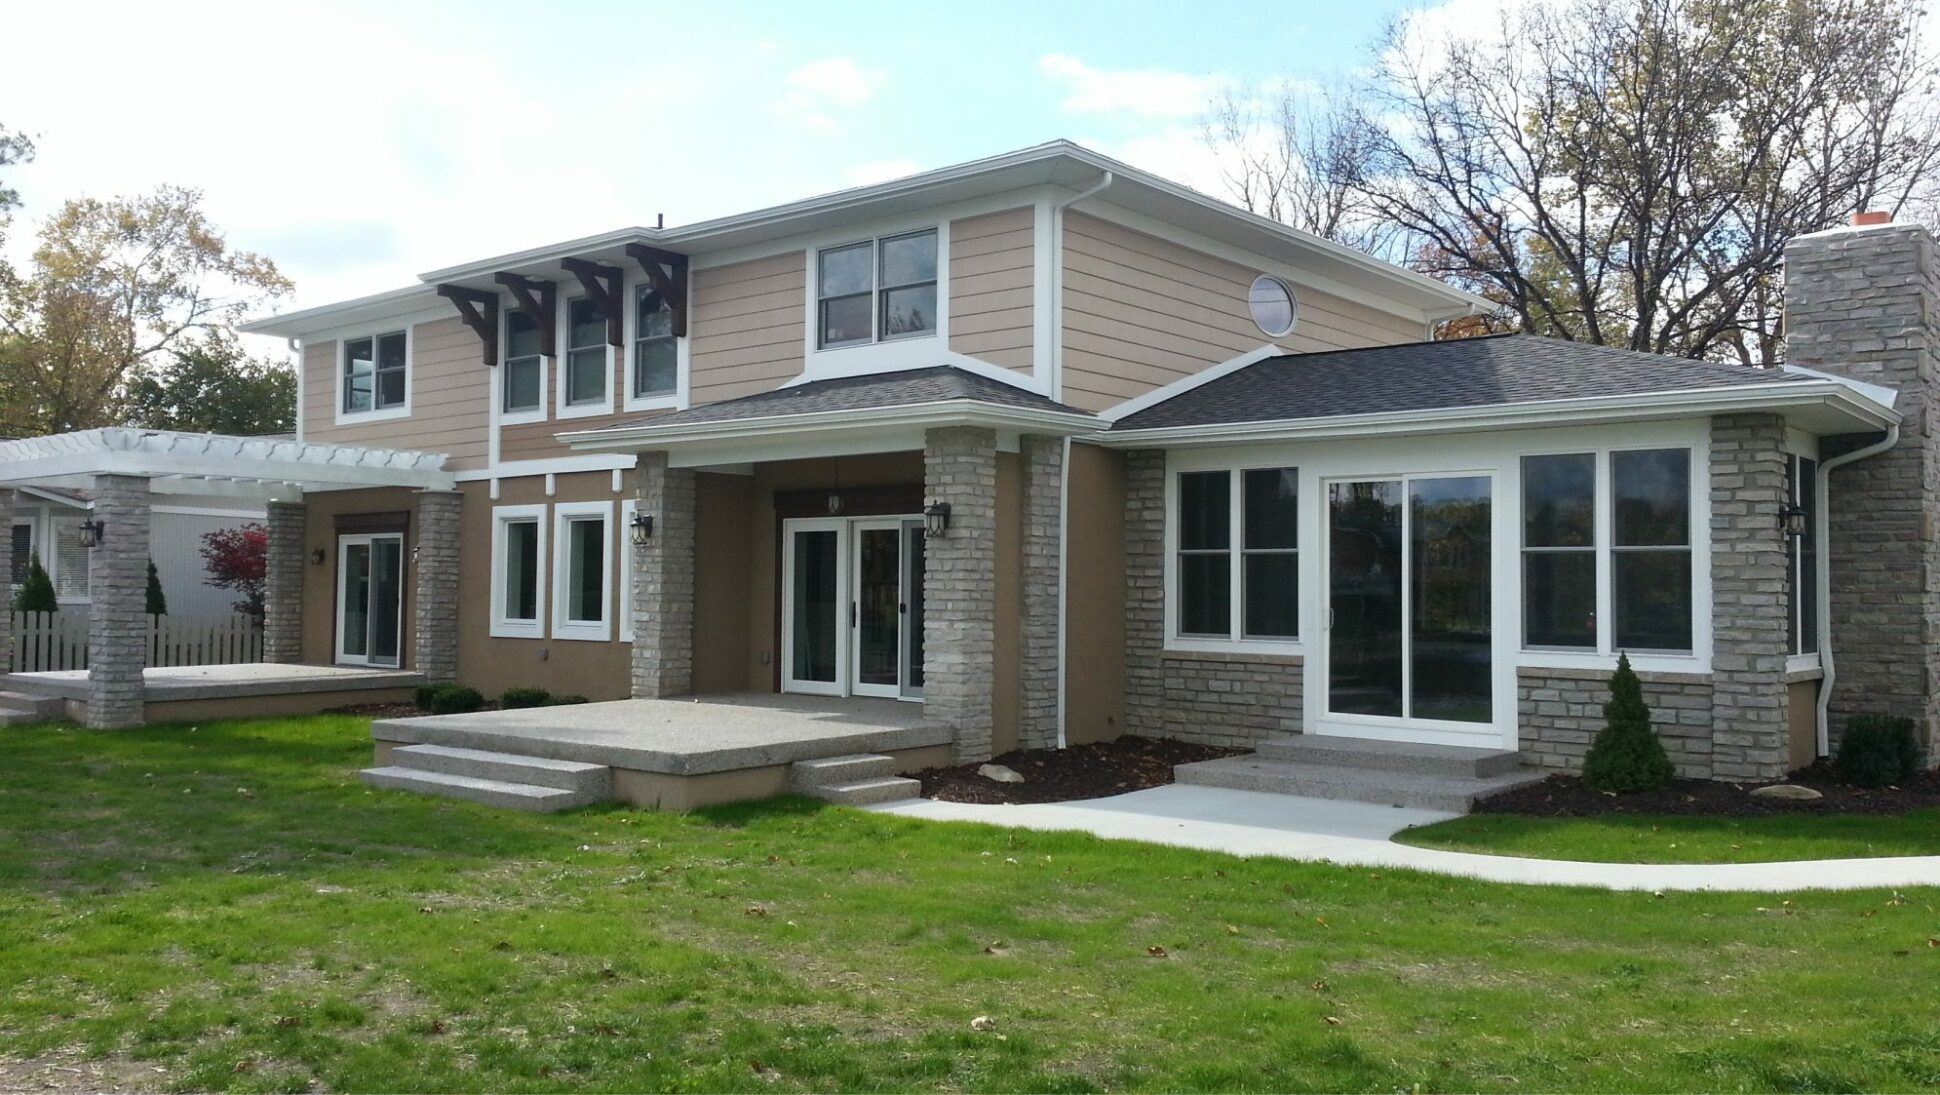 Design_Build_New_Home_Construction_Lake_Fenton_MI